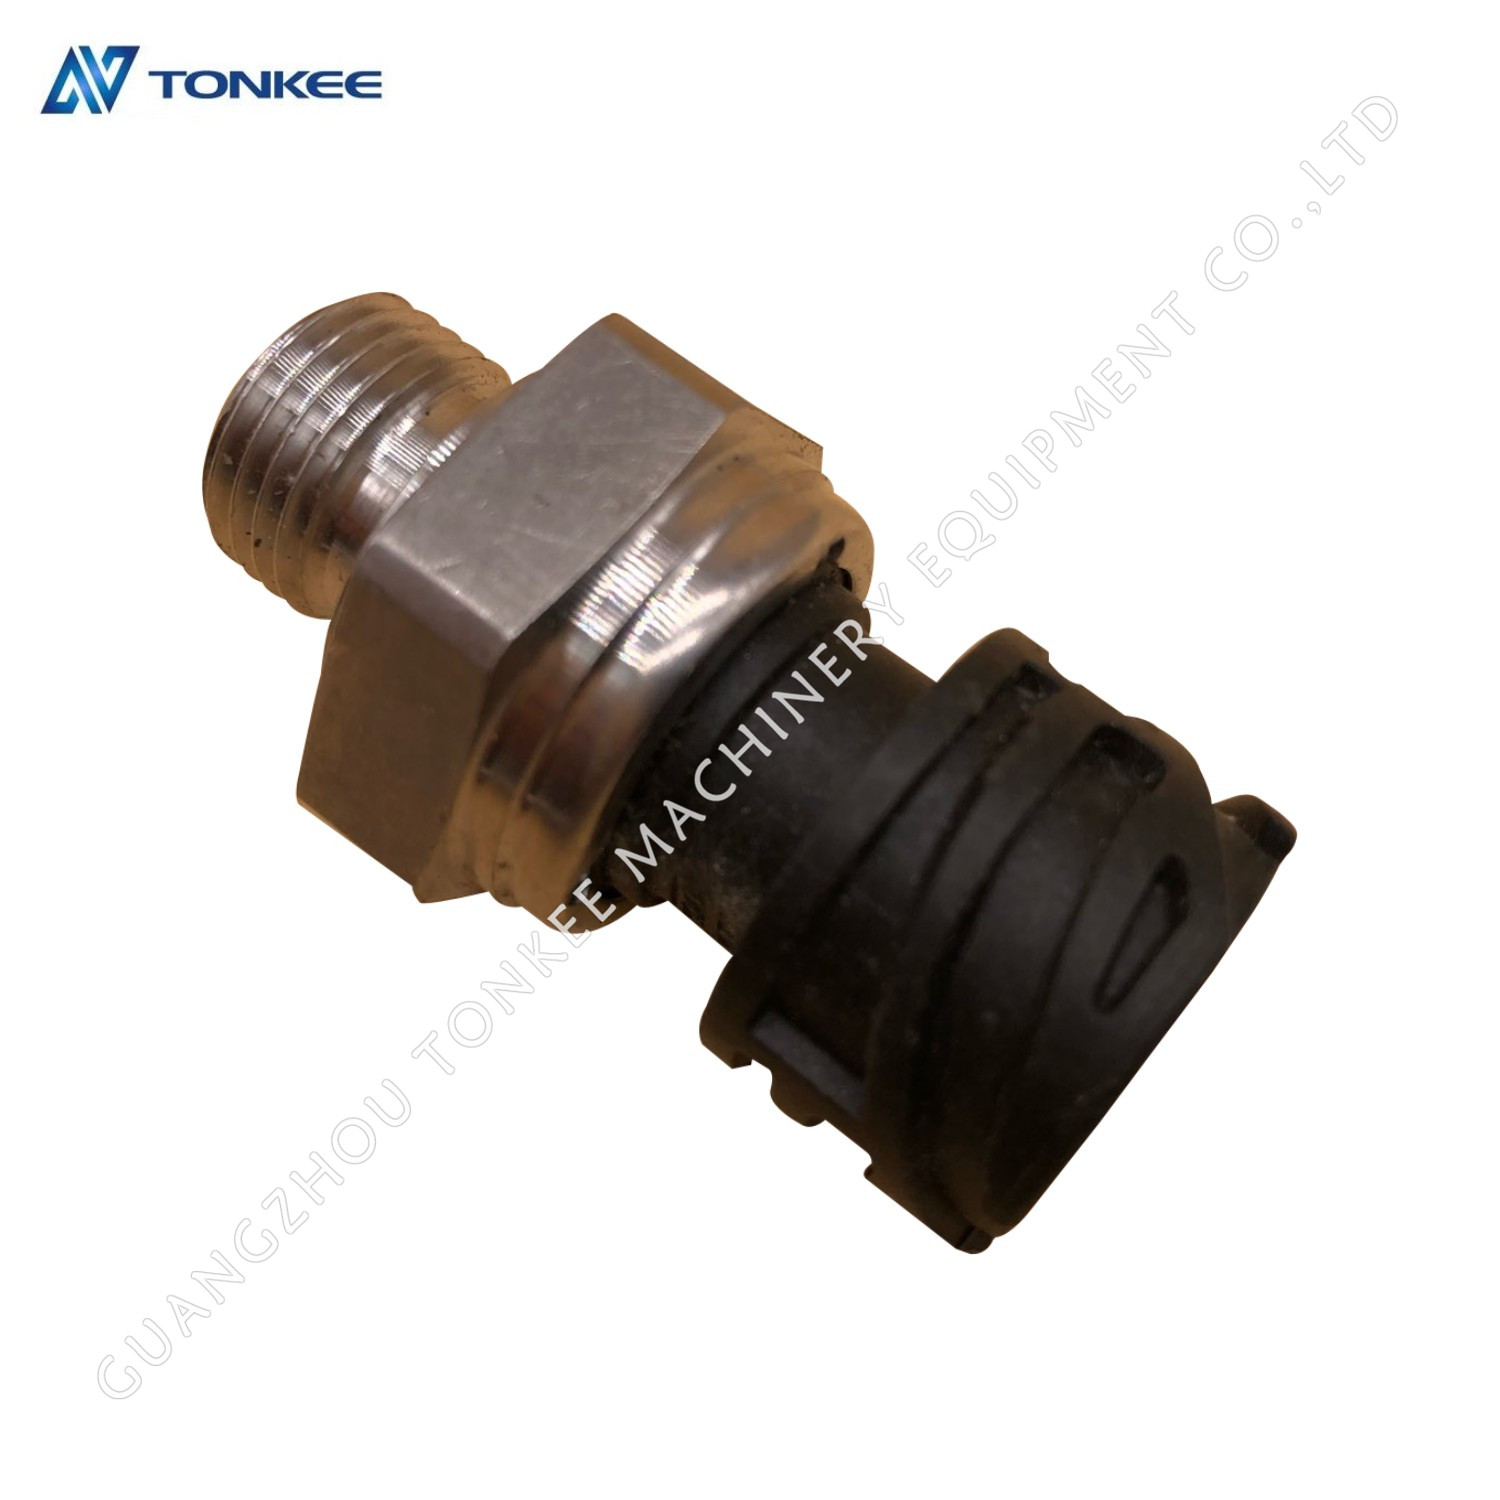 NEW FH12 FM12 FH16 oil pressure sensor VOE21634024 Sender Unit oil pressure sensor for VOLVO truck